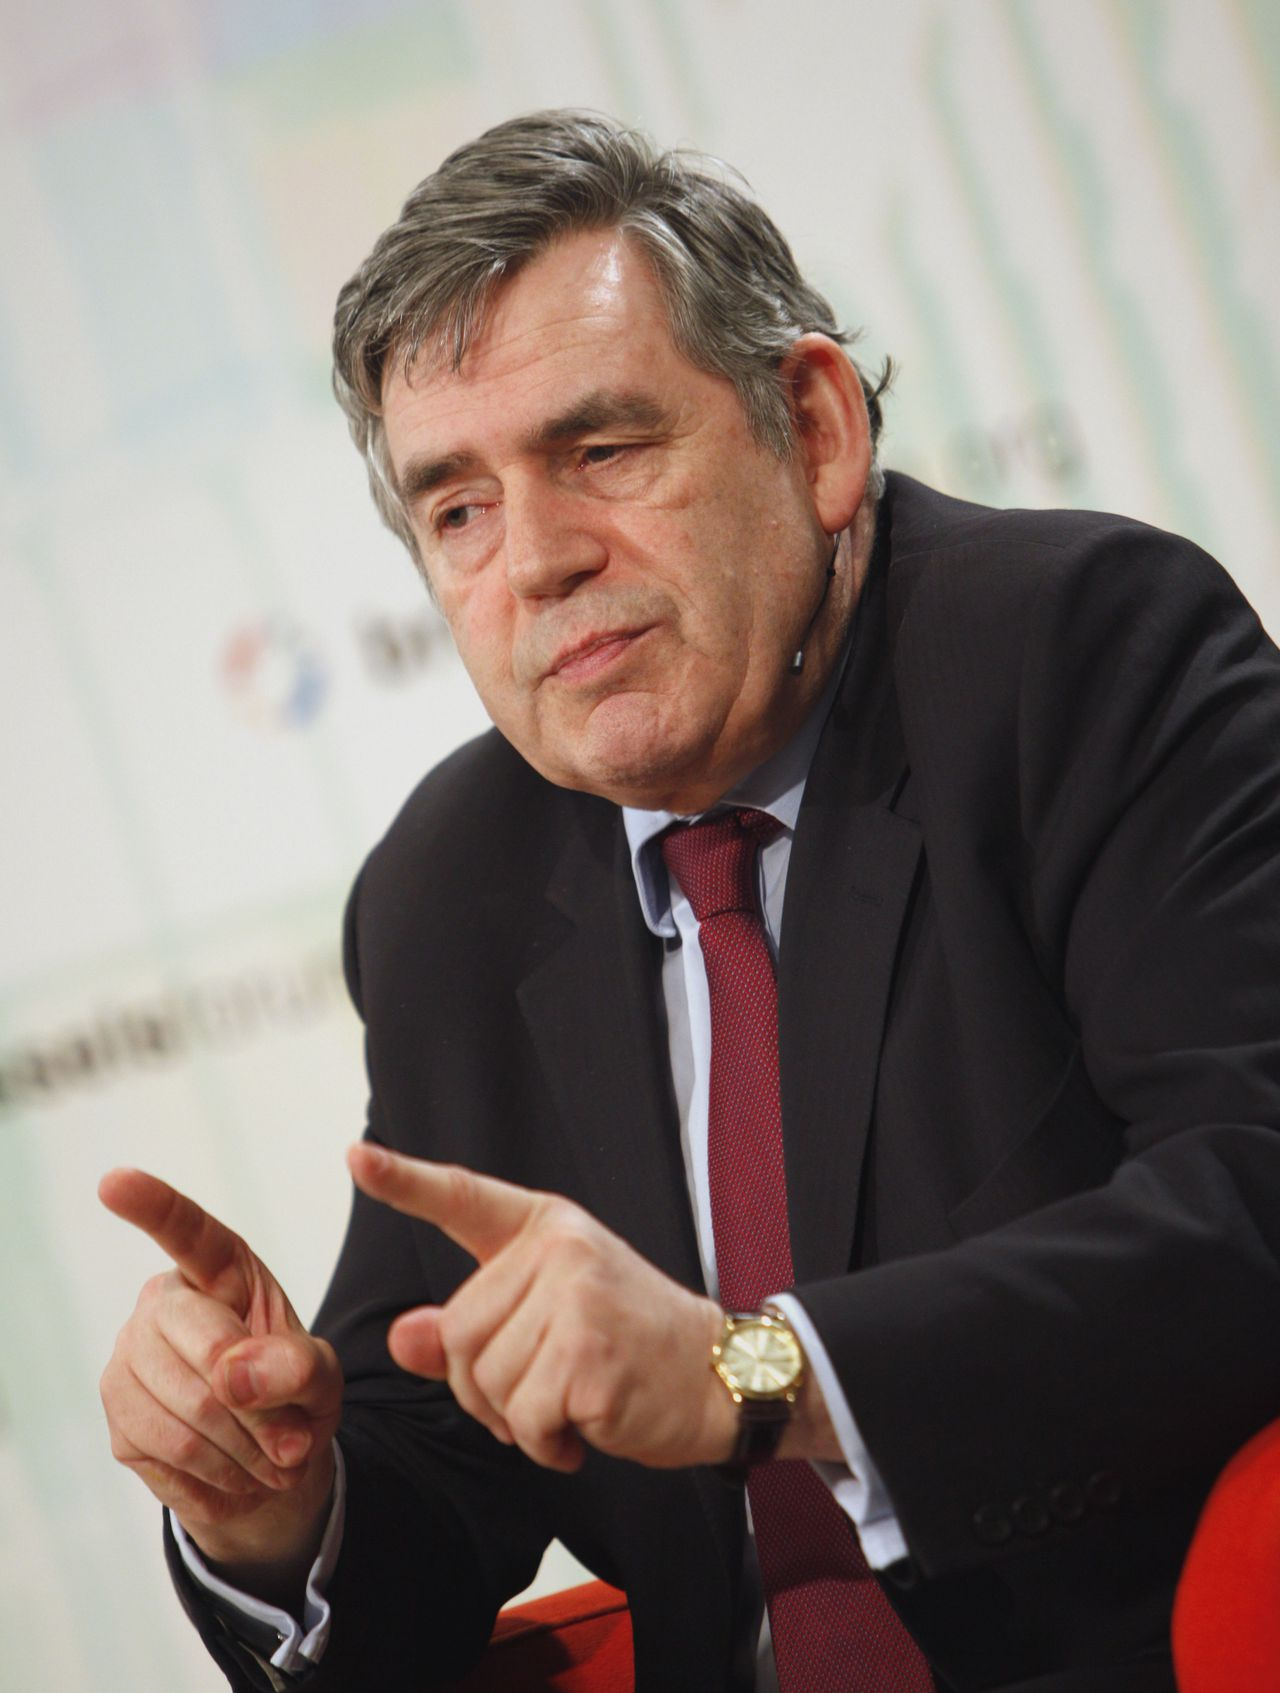 "Former British Prime Minister Gordon Brown speaks during a session 'Keeping the G20 en Vogue' at a German Marshall Fund event in Brussels on Saturday, March 26, 2011. Less than a week ahead of a meeting of the Group of 20 in China, former British Prime Minister Gordon Brown urged the world's most powerful economies to seal a ""global growth pact"" to fight unemployment. (AP Photo/Virginia Mayo)"